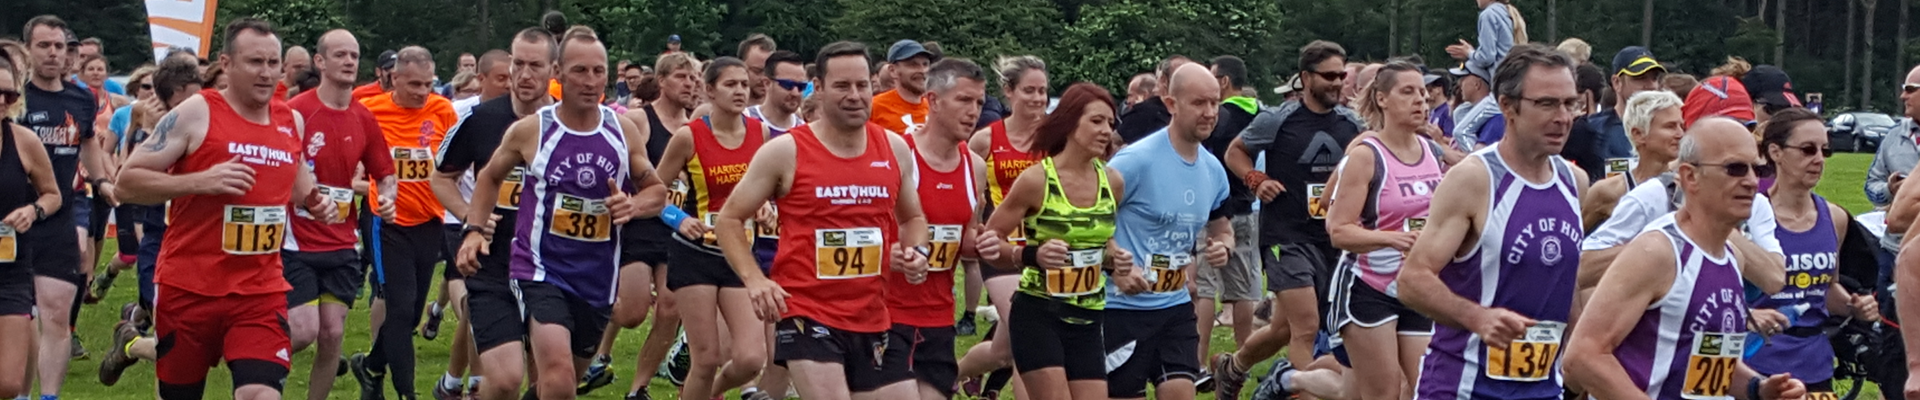 Dalby Conquer the Forest Half Marathon & 10k 2020